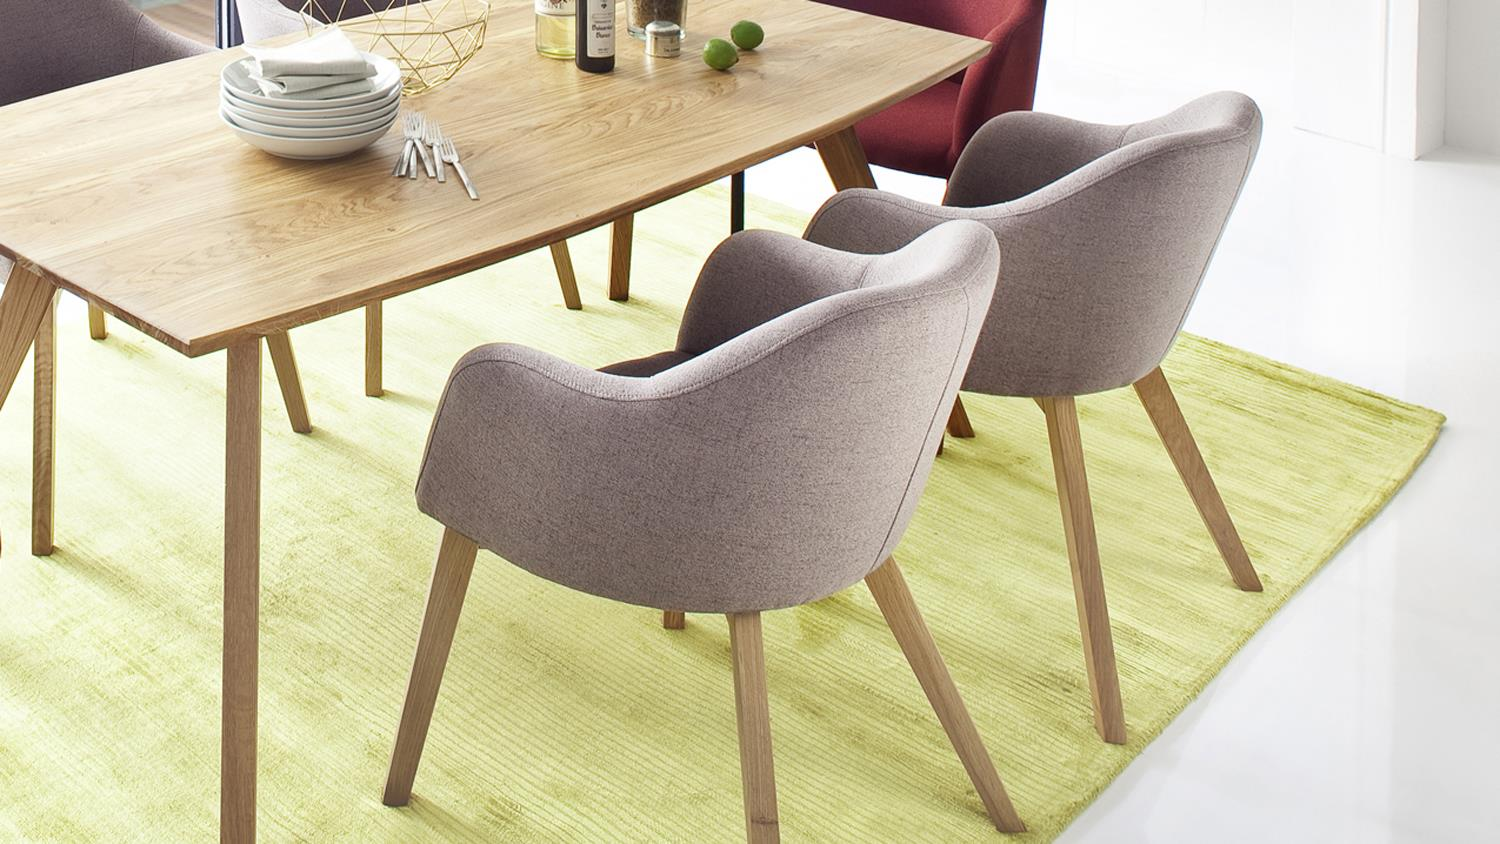 Sessel Theo Systemsessel Theo 4 Fuß Stuhl Stoff Taupe Und Eiche Natur